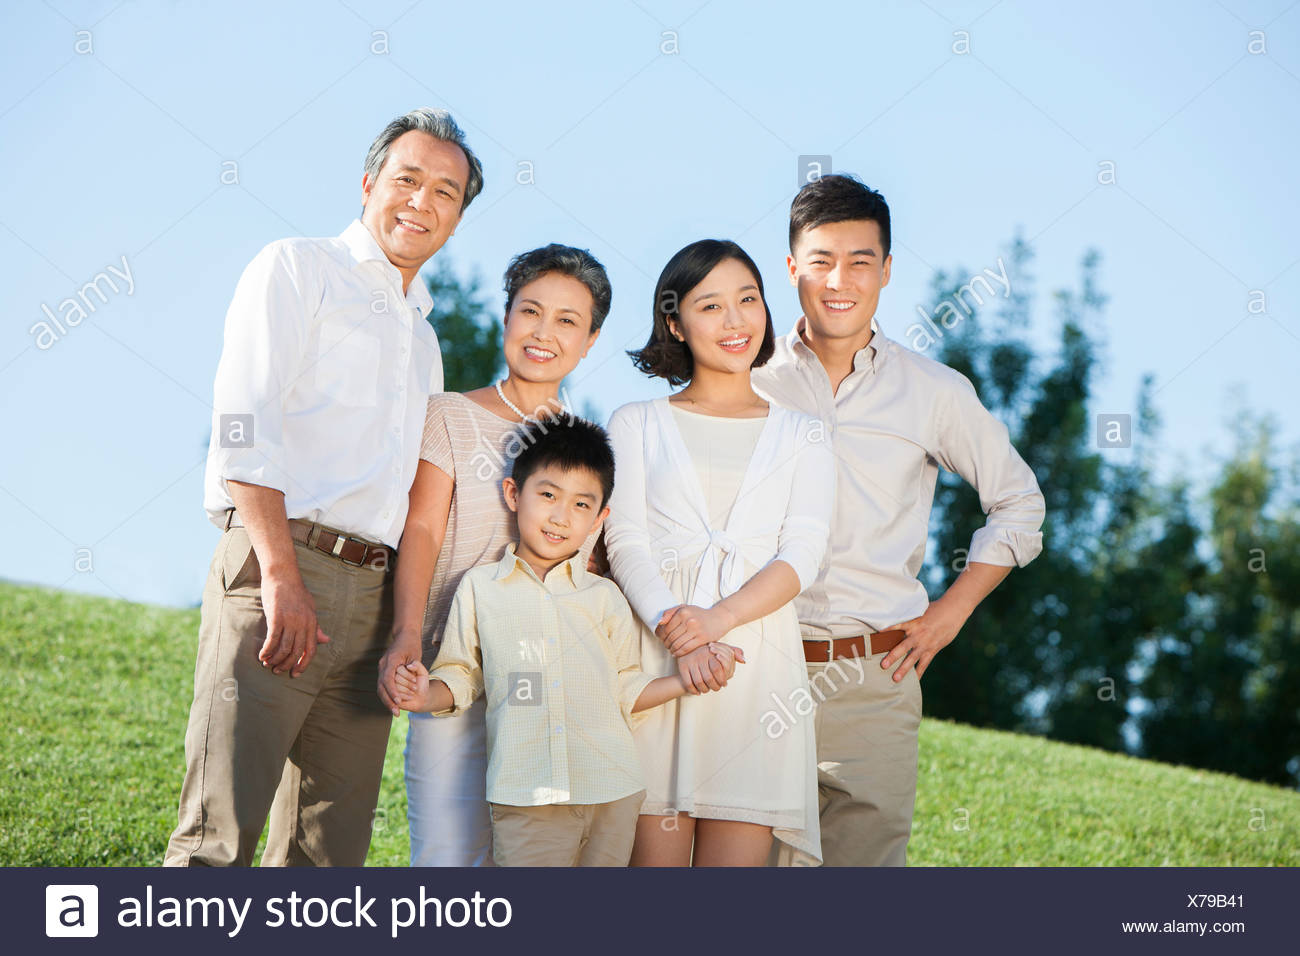 Portrait of big family smiling in a park Stock Photo